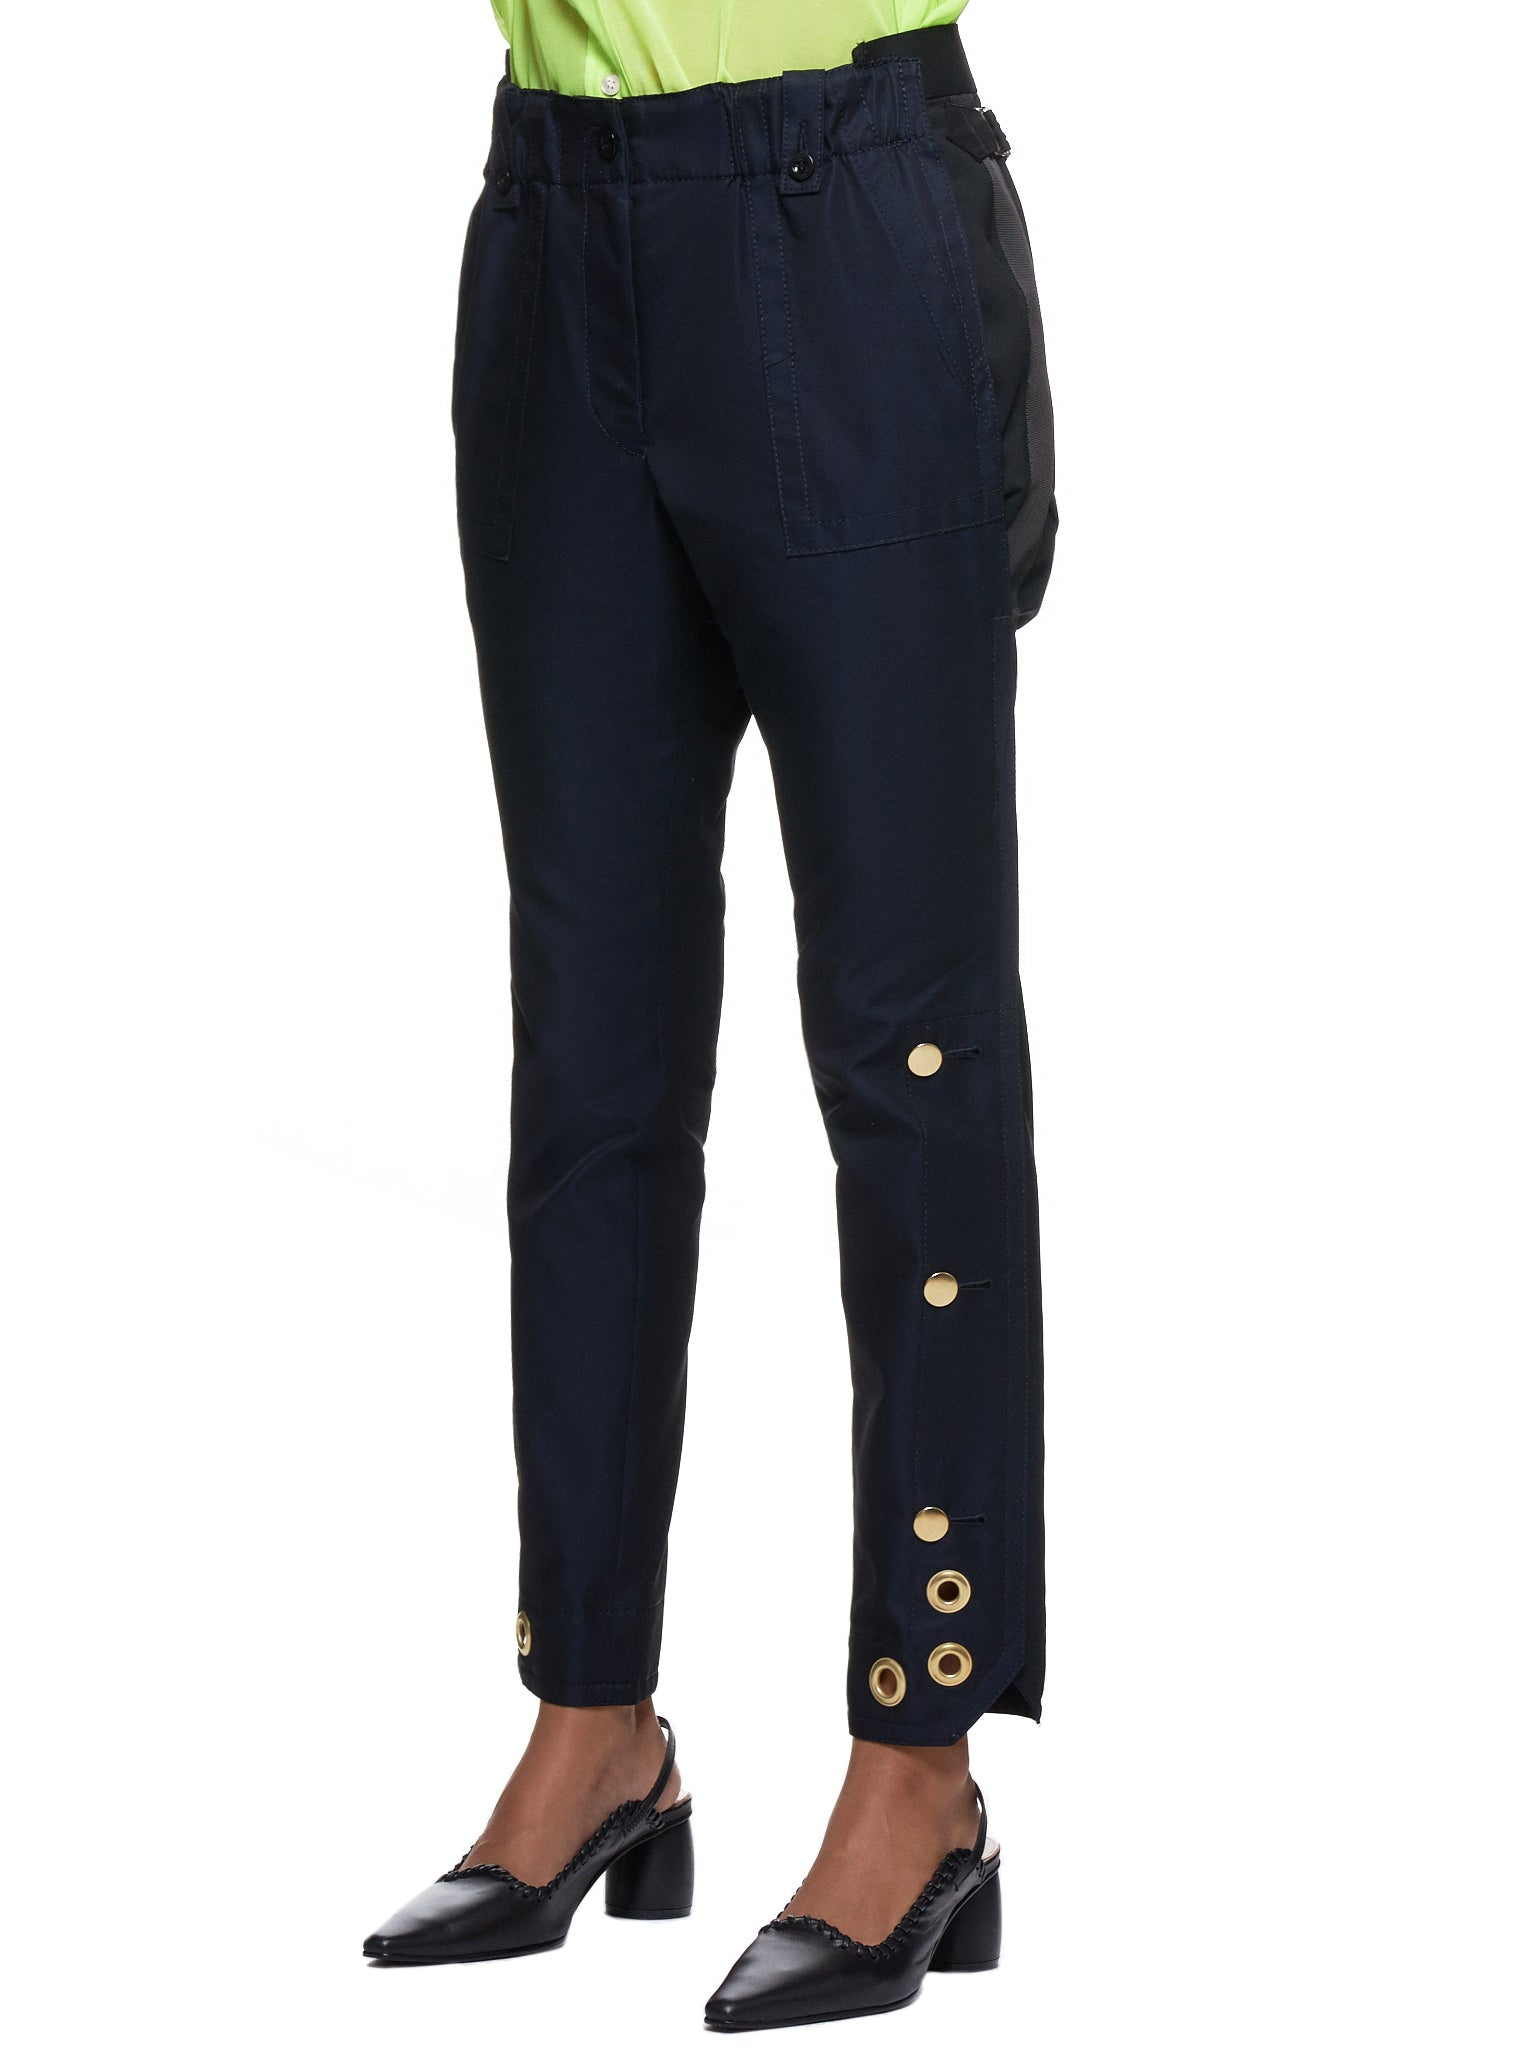 Sacai Pants - Hlorenzo Side